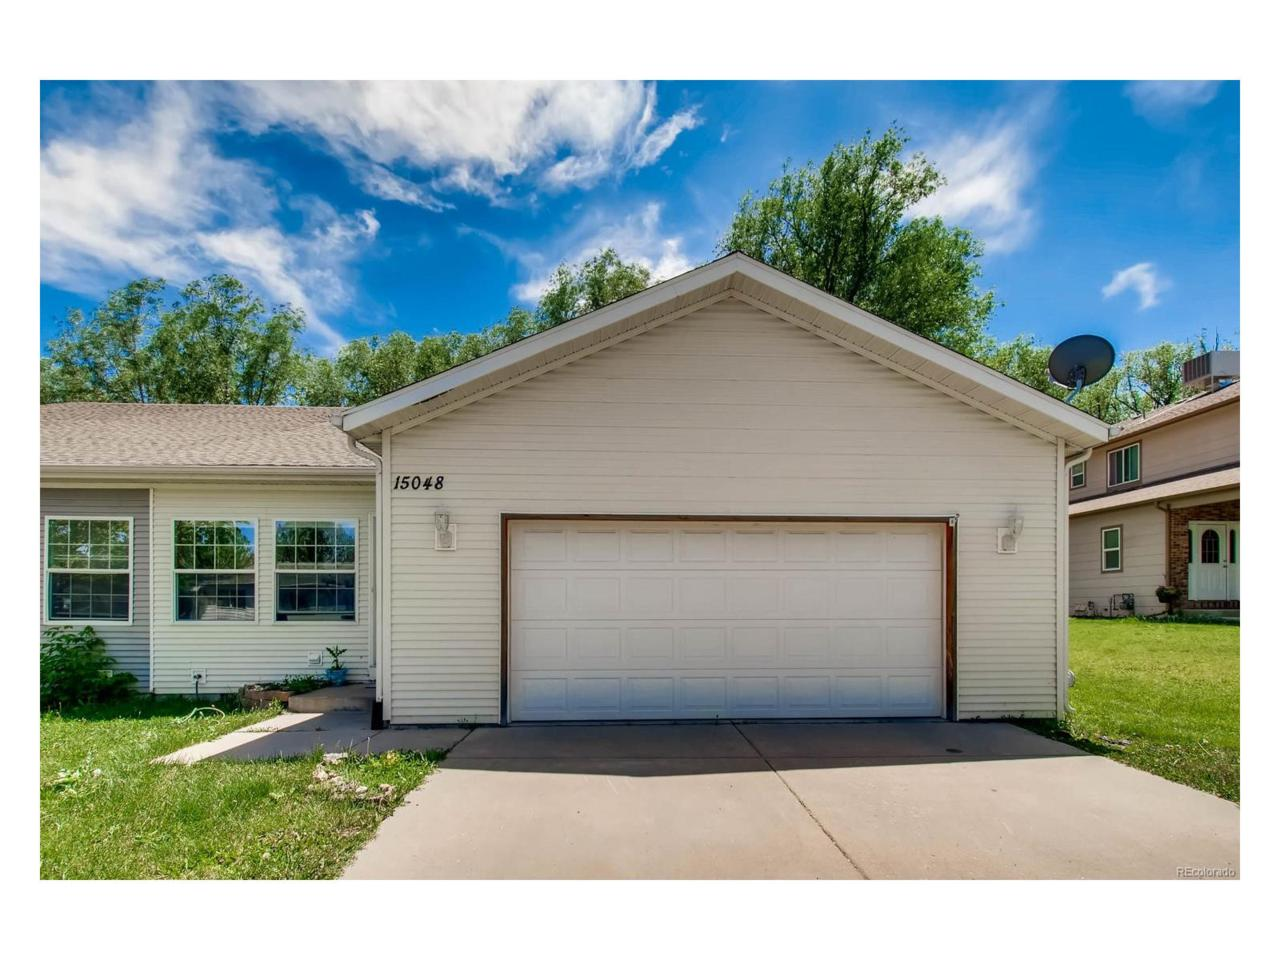 15048 W 13th Avenue, Golden, CO 80401 (MLS #8792873) :: 8z Real Estate